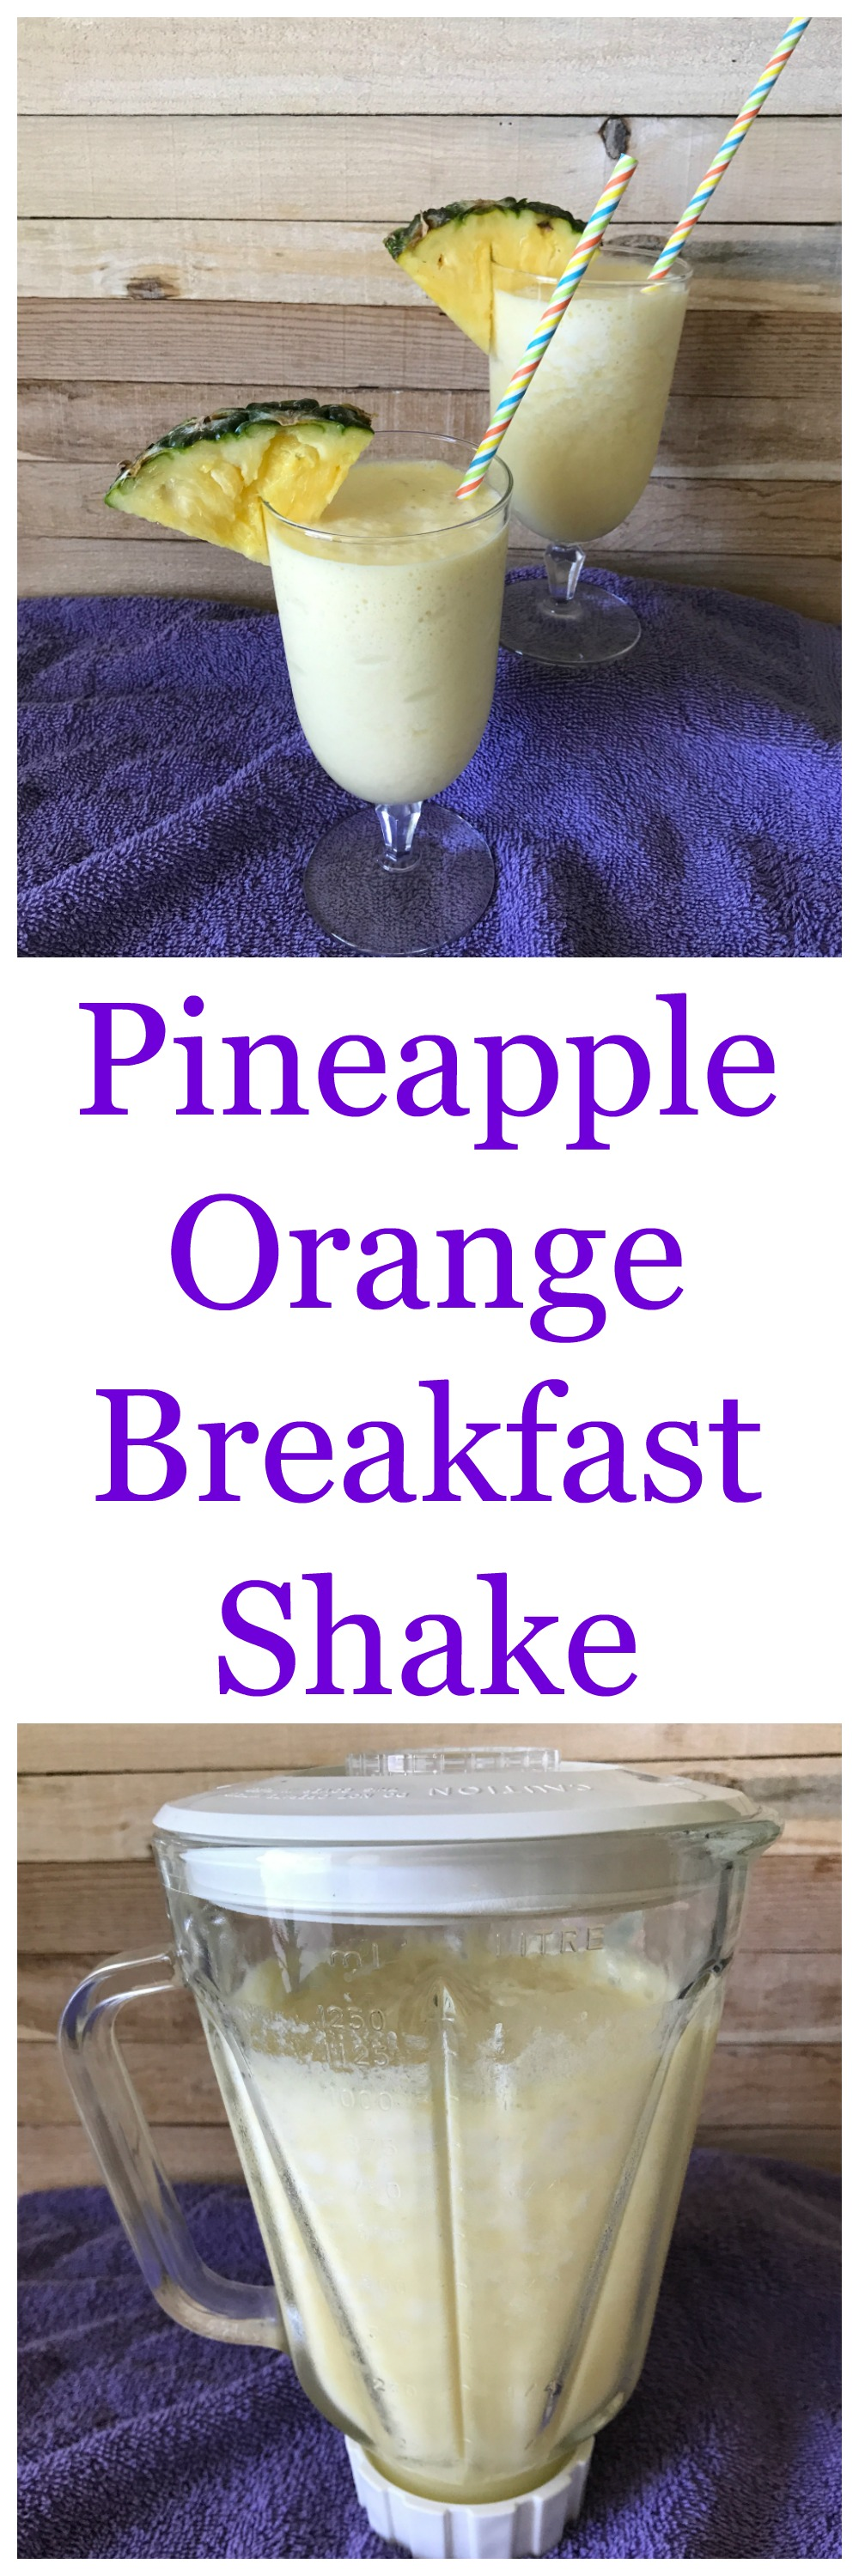 Pineapple Orange Breakfast Shake